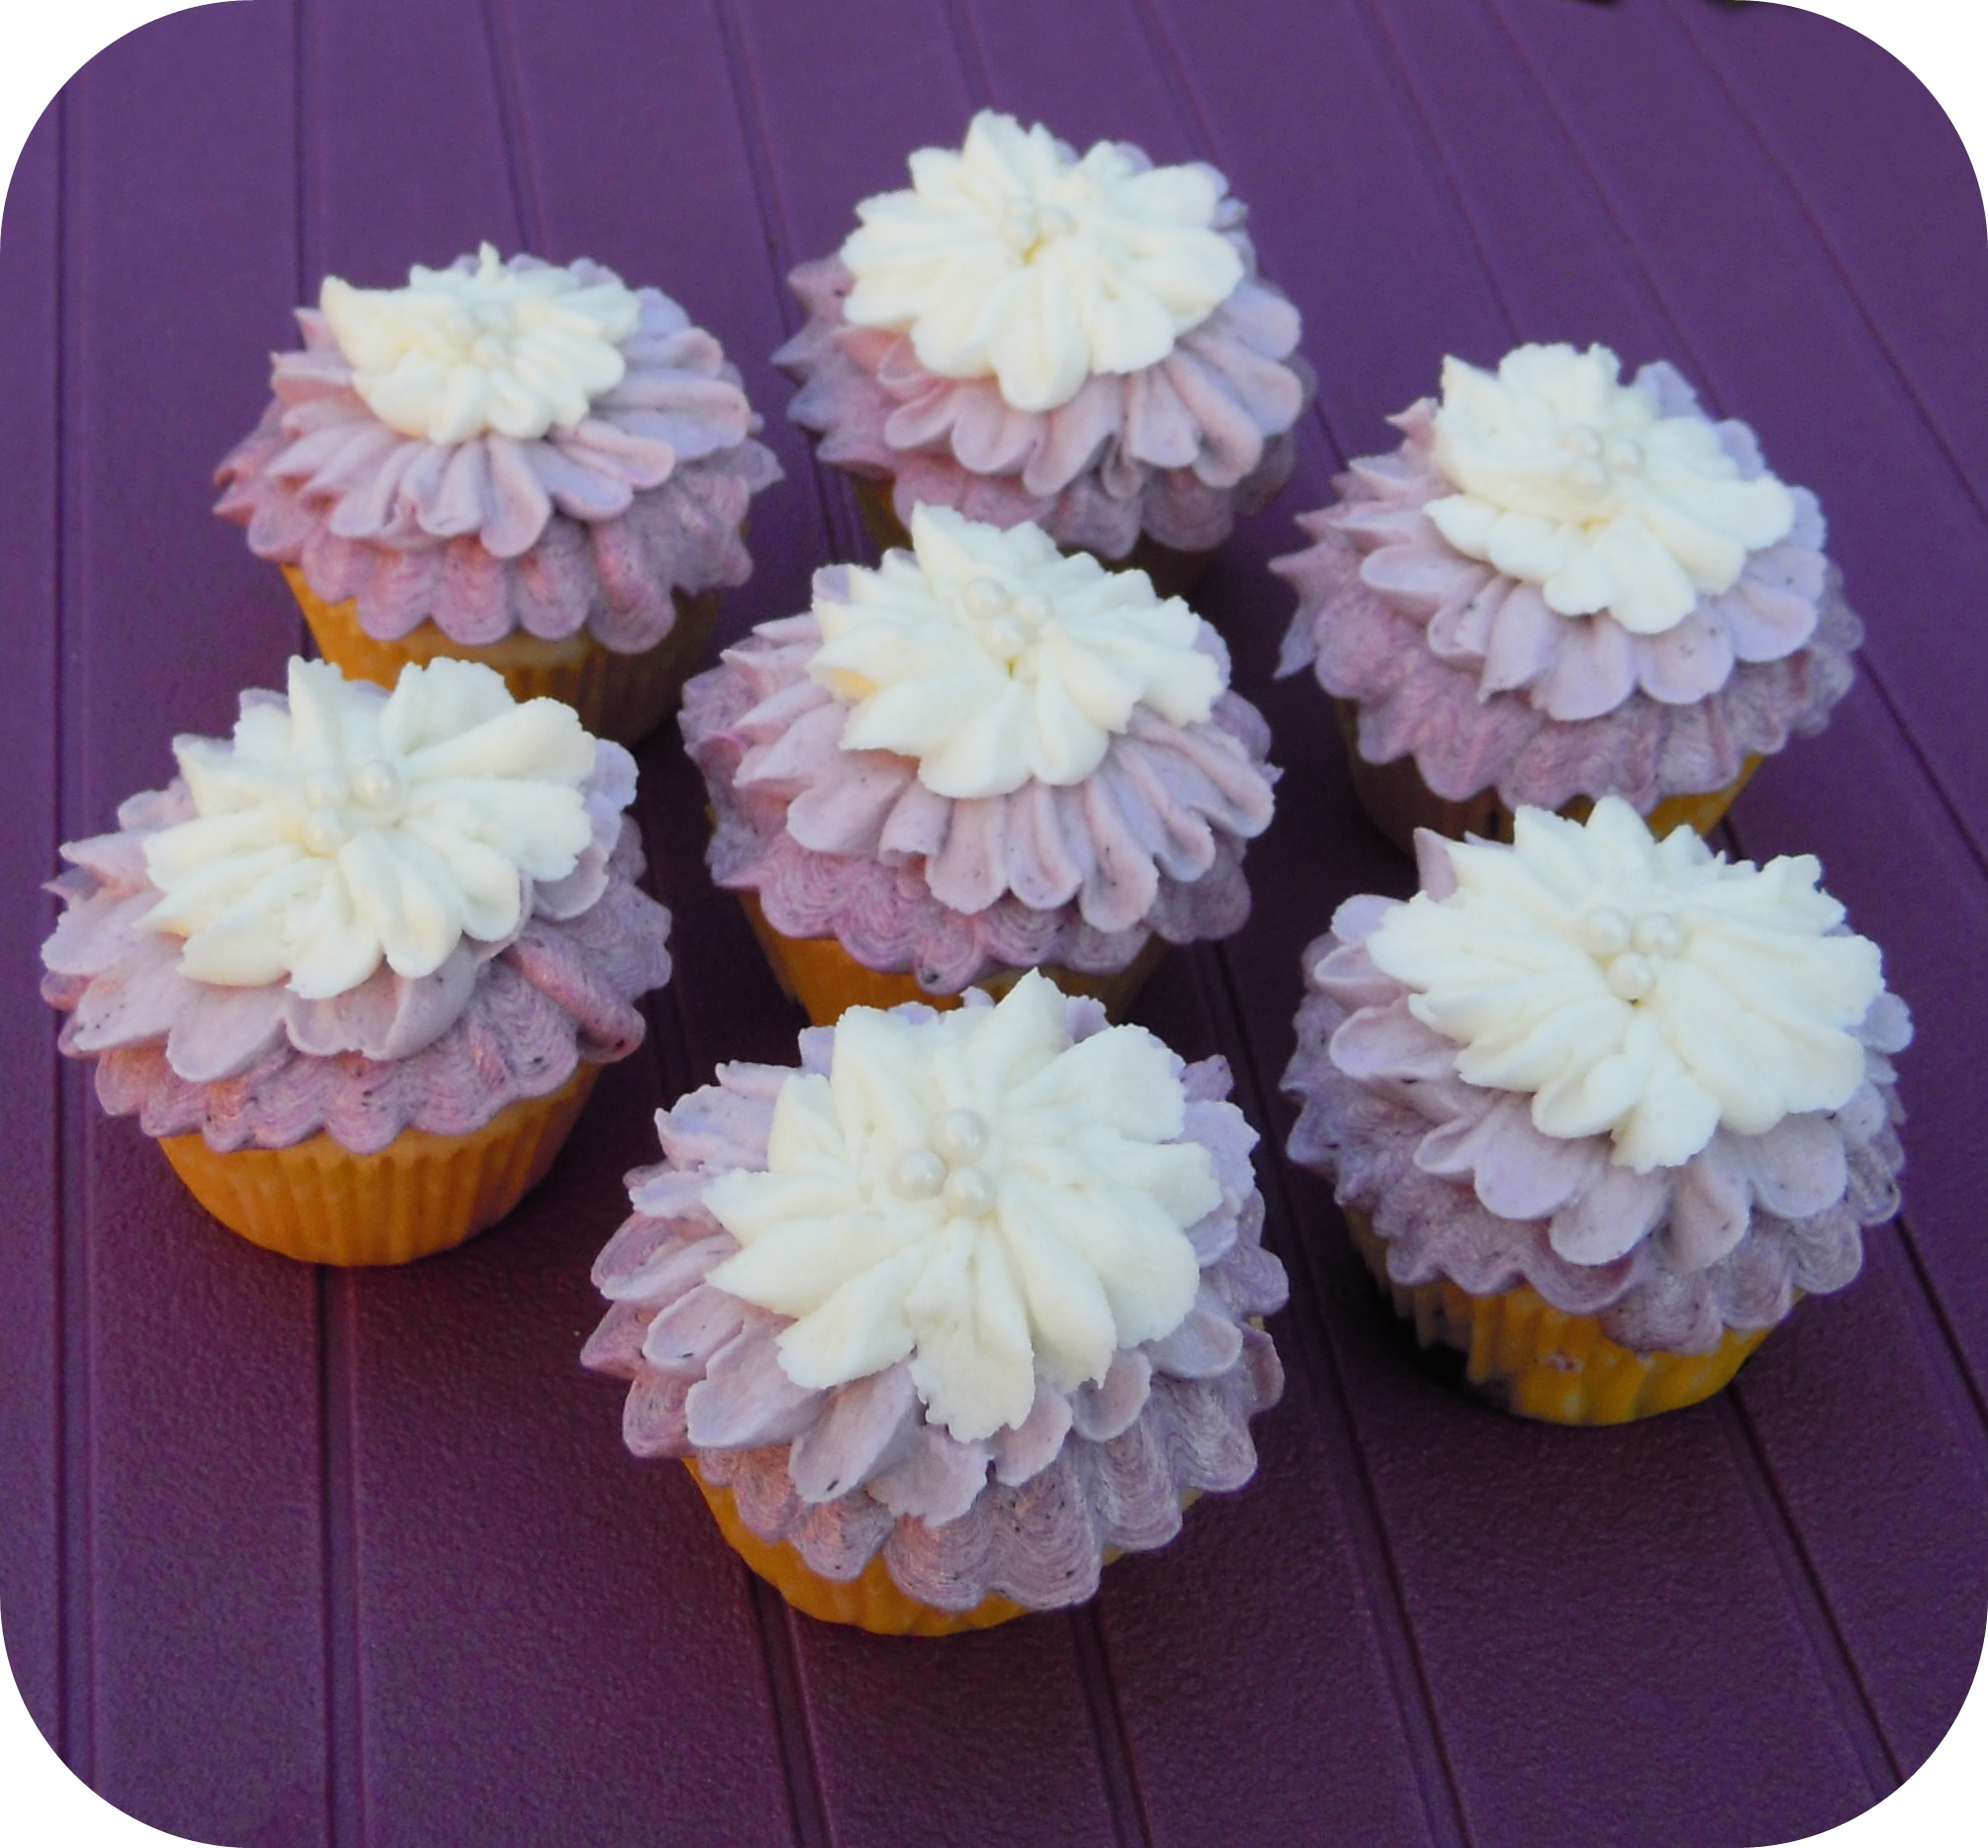 Mini Lemon-Blueberry Cupcakes with Blueberry Buttercream |